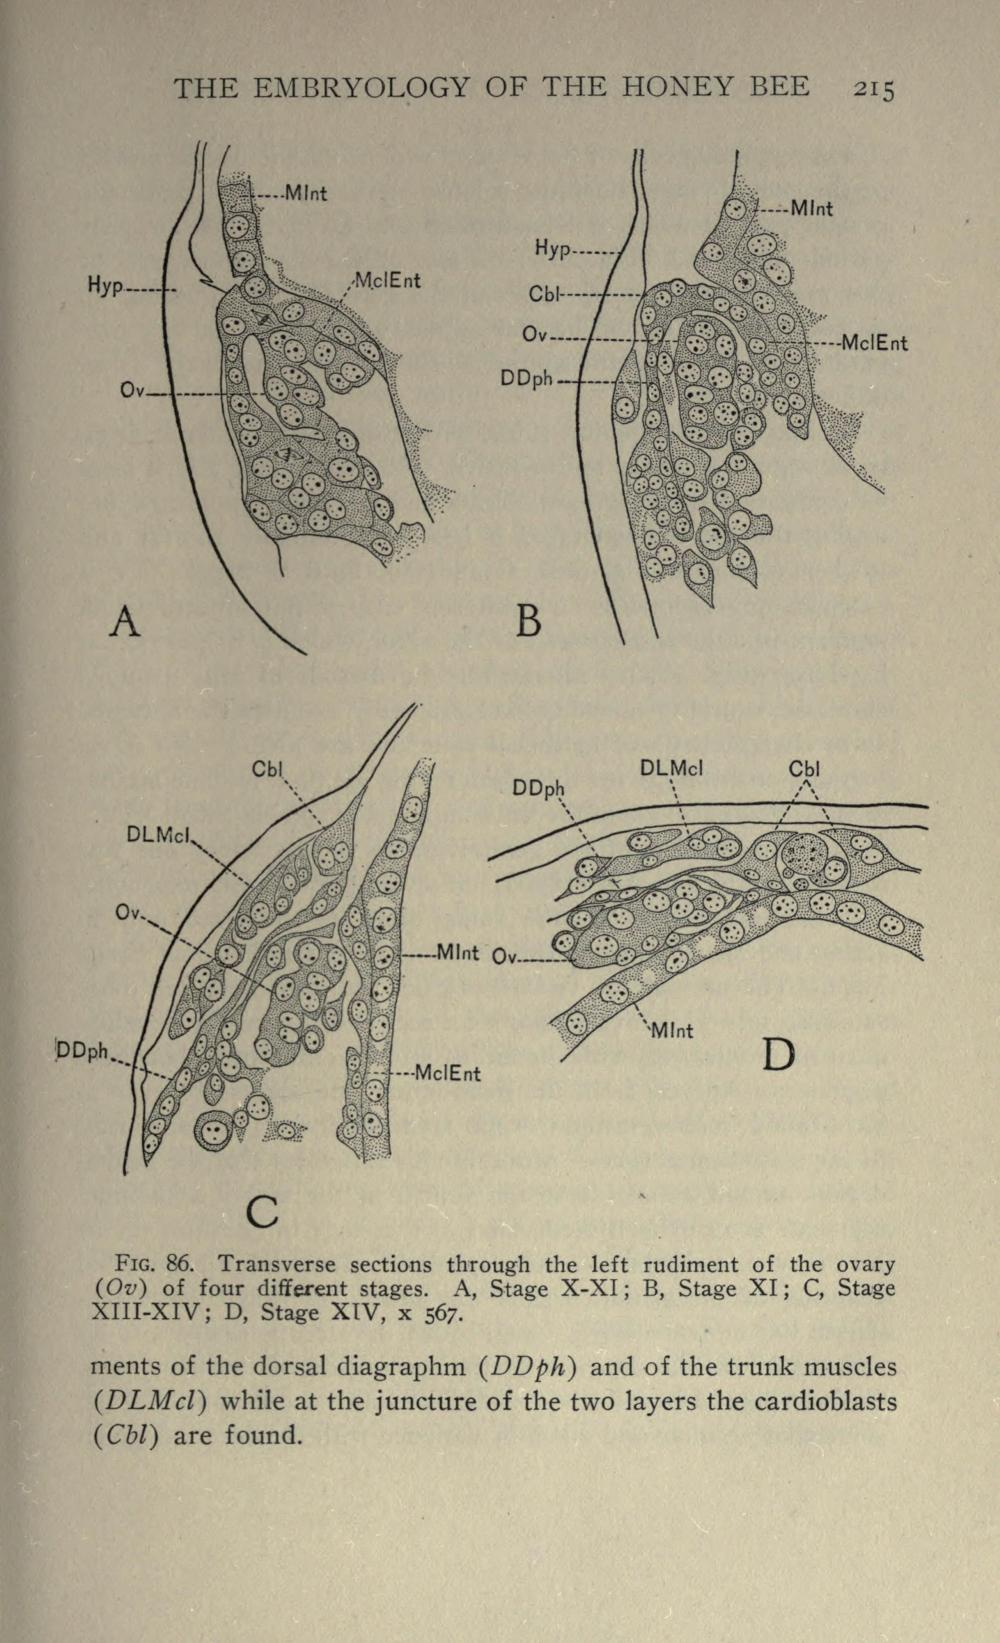 medium resolution of file the embryology of the honey bee page 215 bhl21526704 jpg